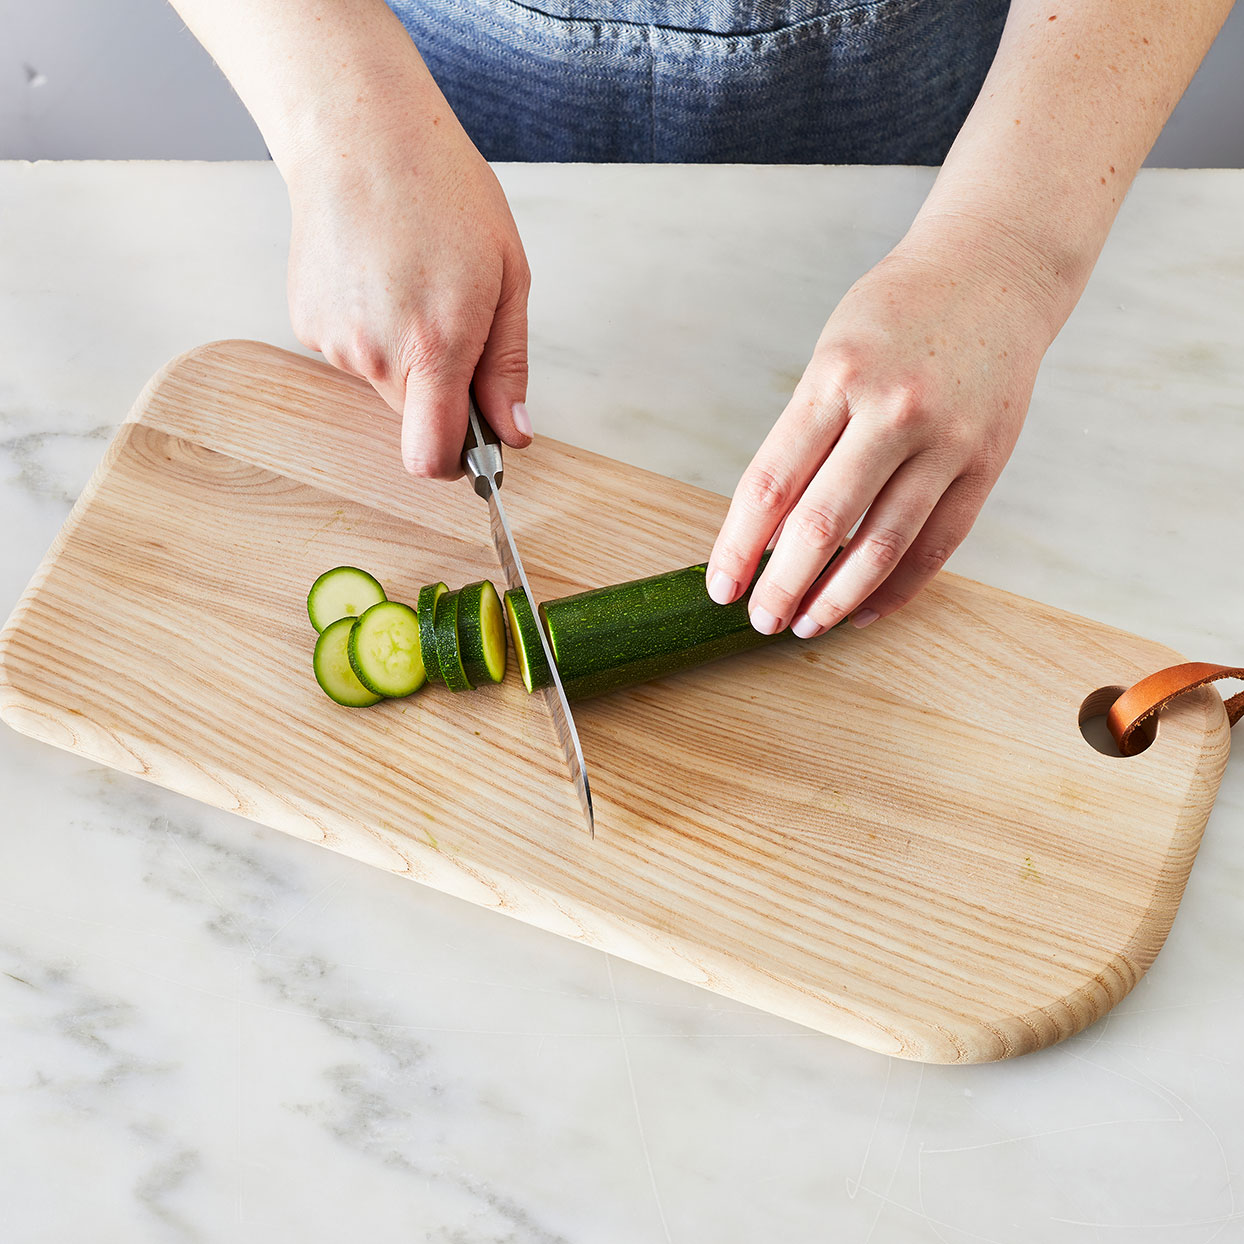 Slicing-zucchini-to-saute